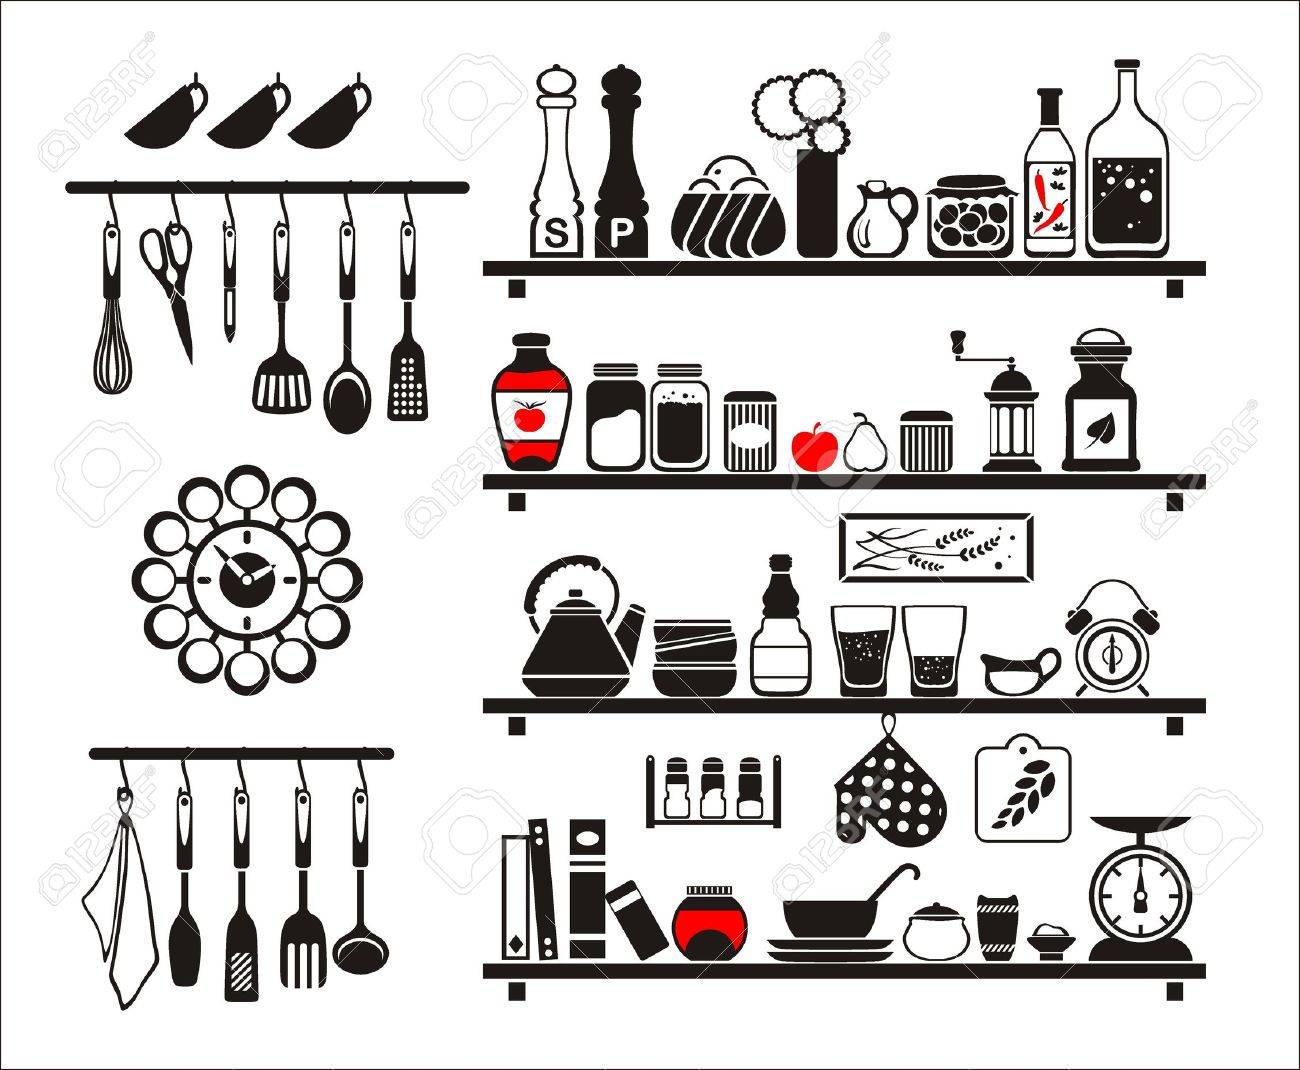 black food and drinks icons set, drawn up as kitchen shelves Stock Vector - 18730952